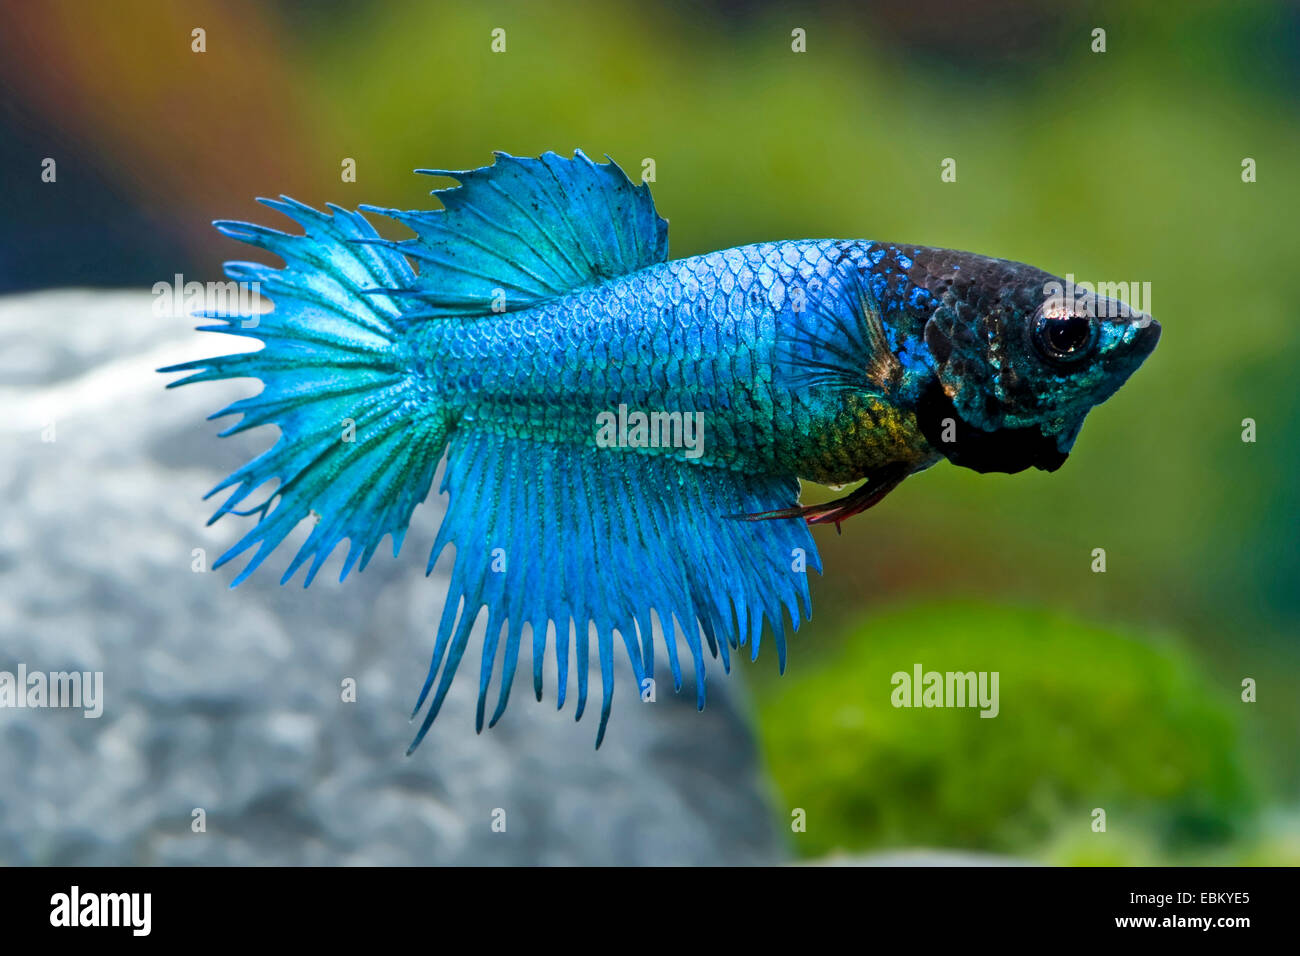 Blue crowntail betta